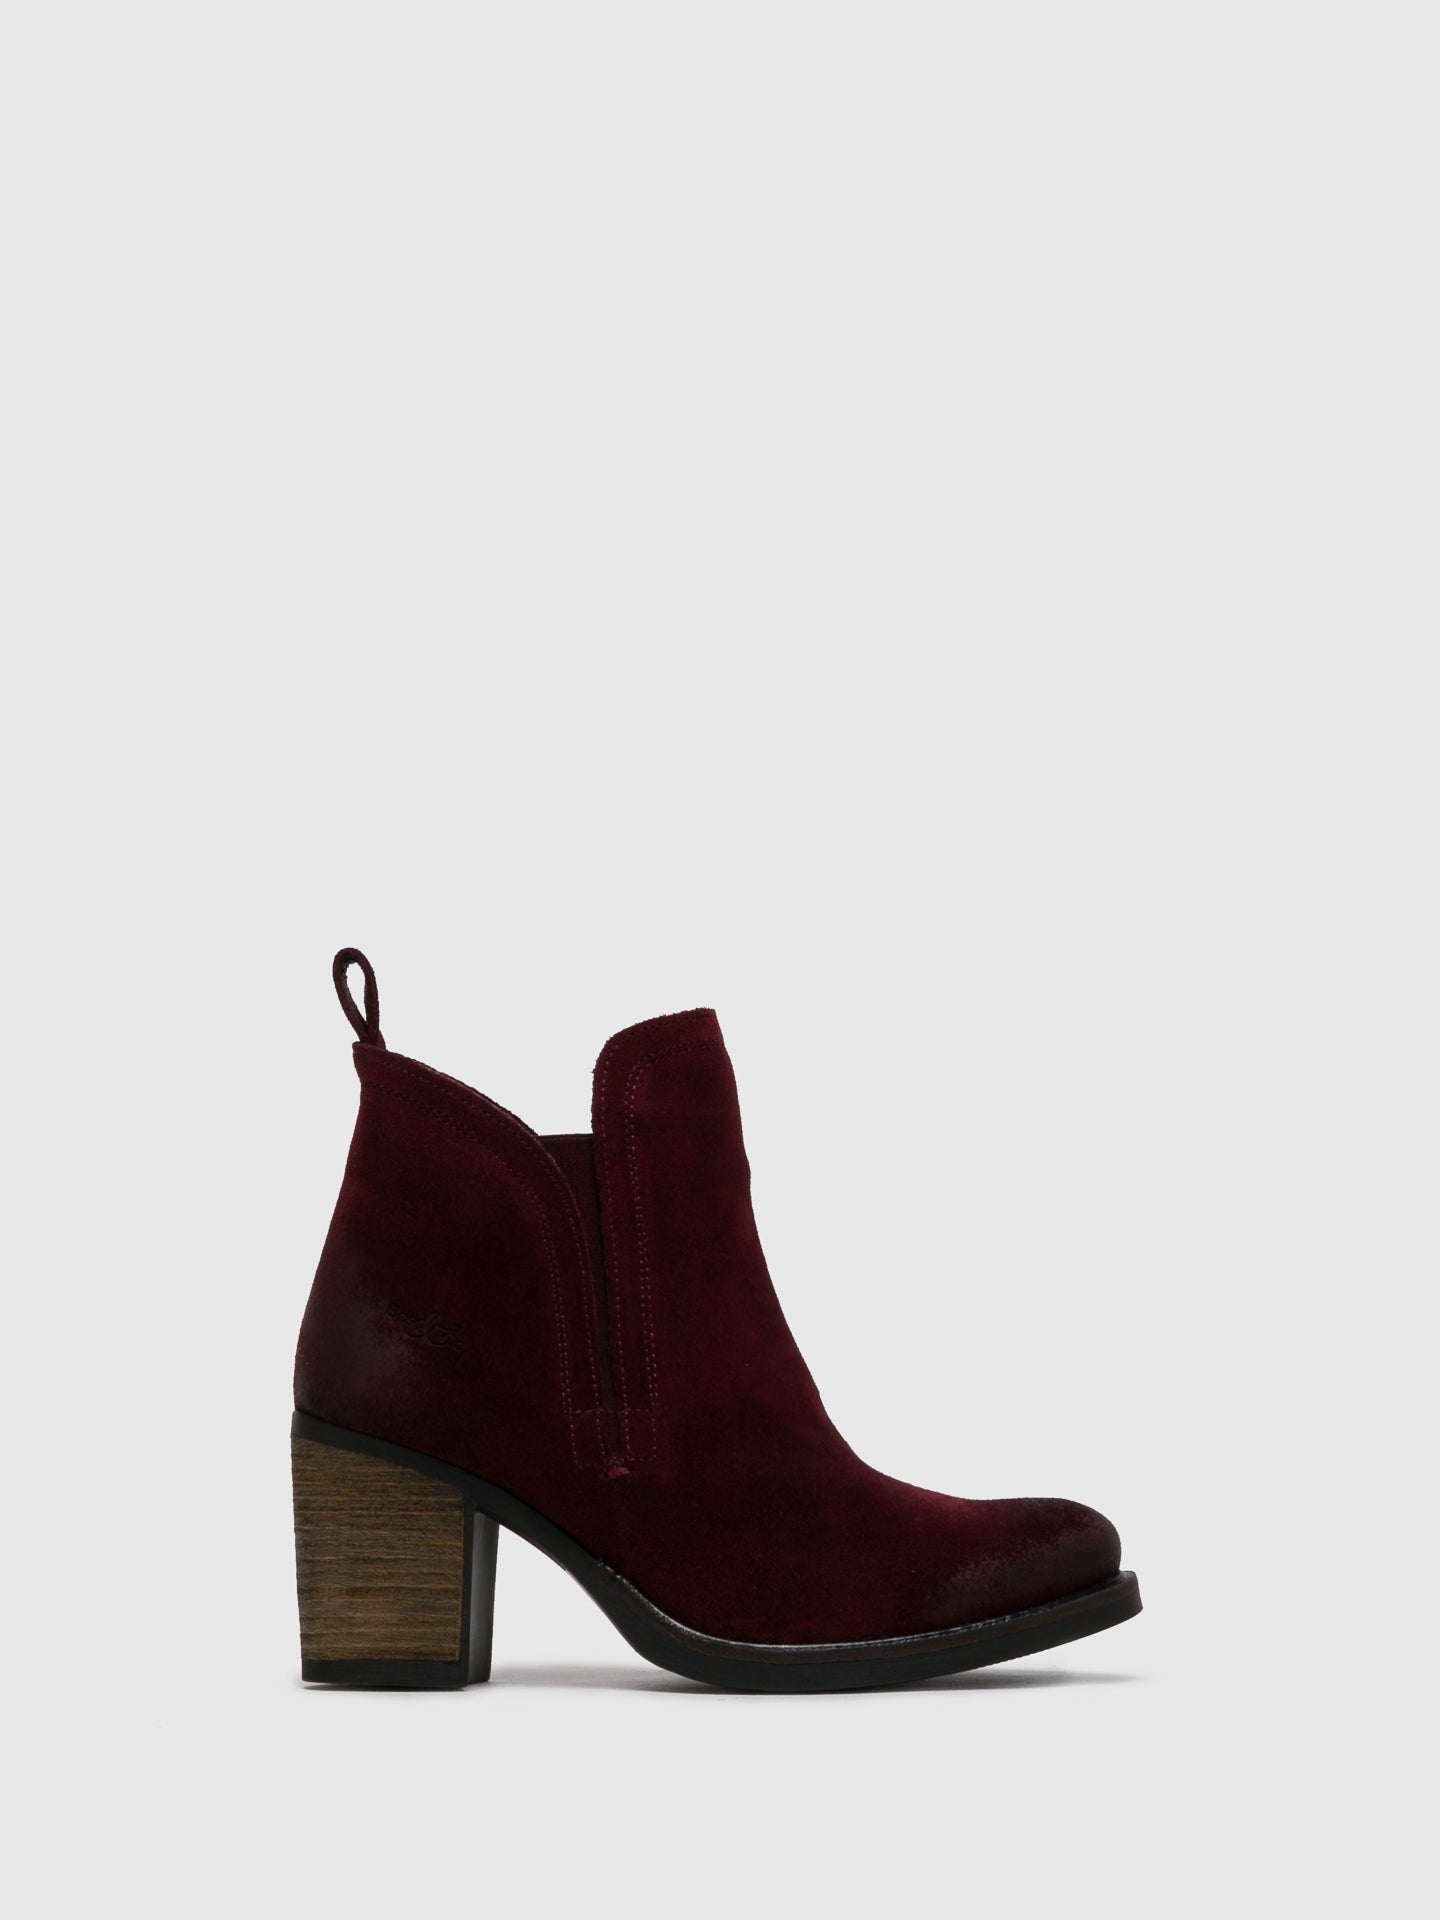 Bos&Co DarkRed Round Toe Ankle Boots